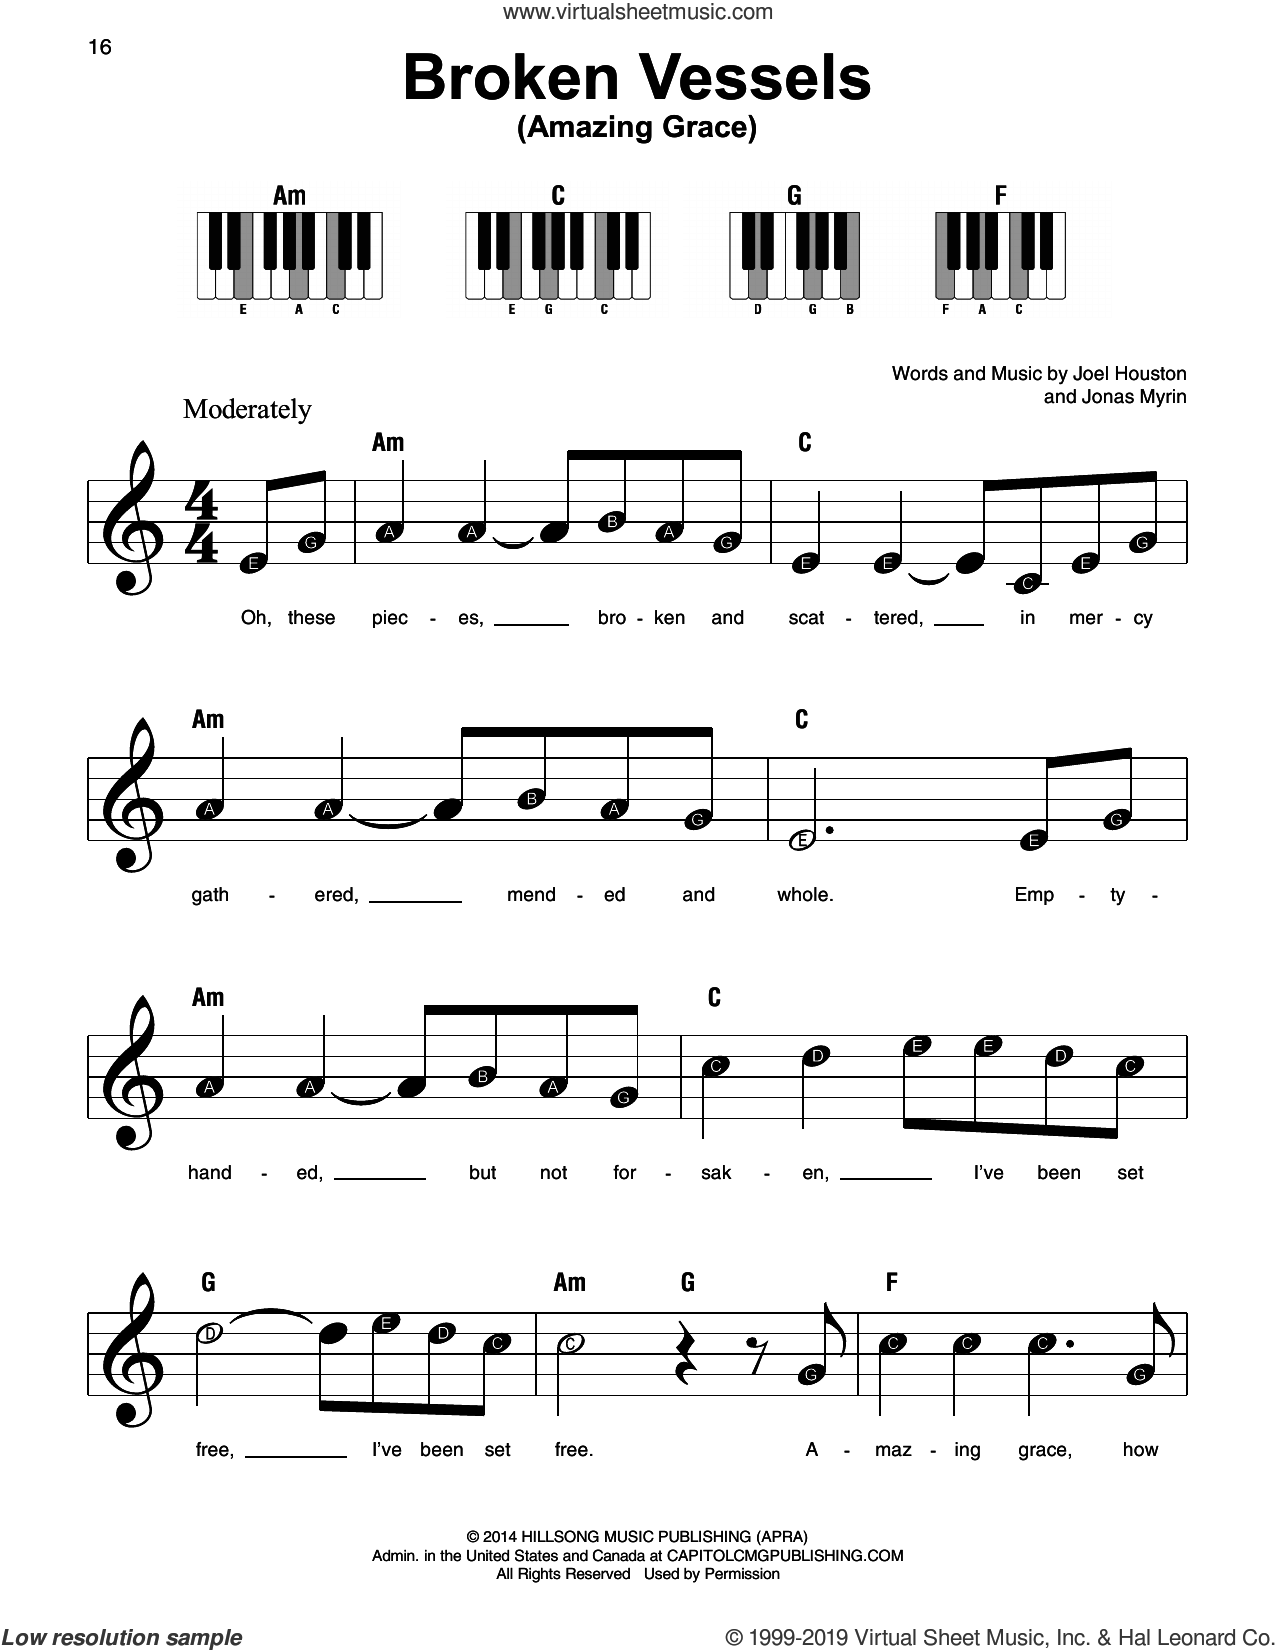 Broken Vessels (Amazing Grace) sheet music for piano solo by Hillsong Worship, Joel Houston and Jonas Myrin, beginner skill level